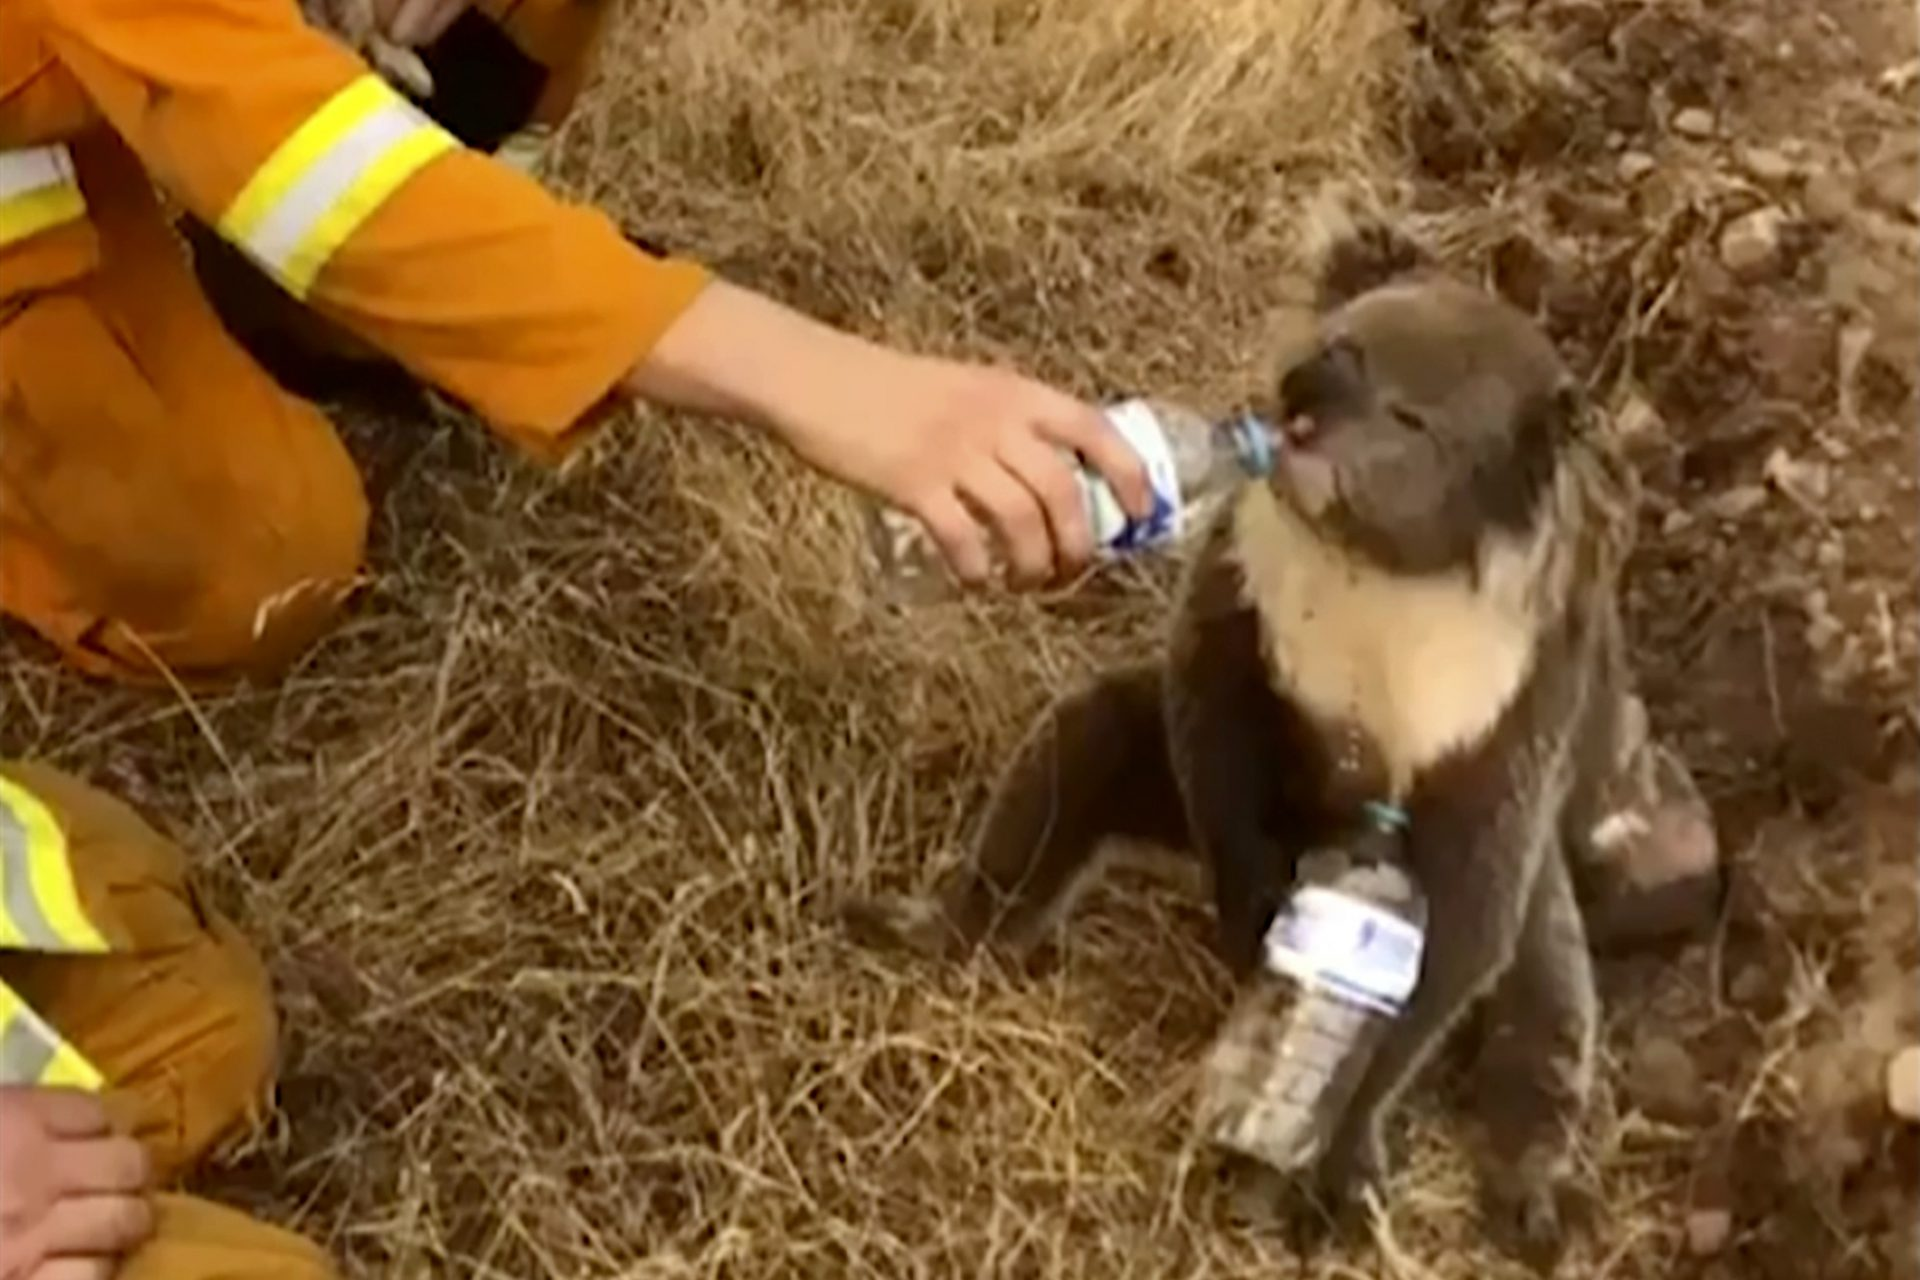 FIEL - In this image made from video taken on Dec. 22, 2019, and provided by Oakbank Balhannah CFS, a koala drinks water from a bottle given by a firefighter in Cudlee Creek, South Australia. Thousands of koalas are feared to have died in a wildfire-ravaged area north of Sydney, further diminishing Australia's iconic marsupial, while the fire danger accelerated Saturday, Dec. 28, 2019 in the country's east as temperatures soared.